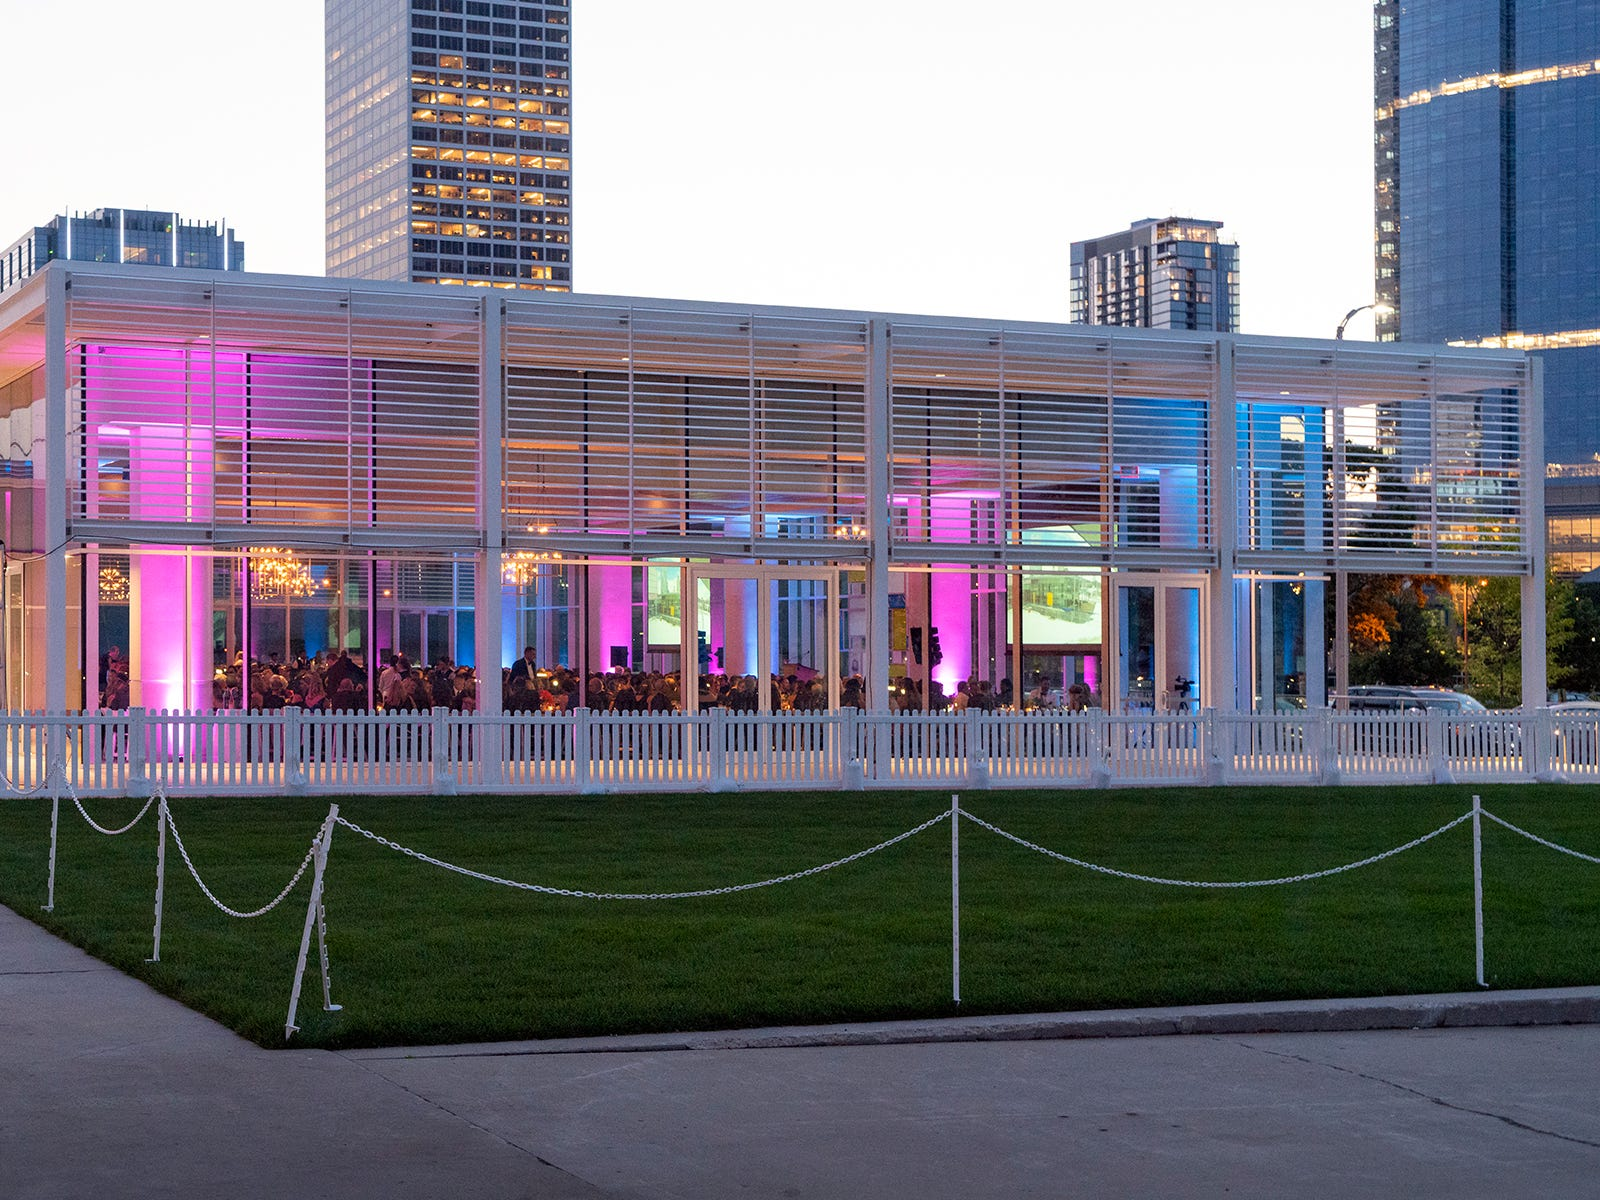 A pavilion was added to Discovery World as part of the renovation, which is being utilized for events as well as to expedite the many field trips that take place at the science museum.